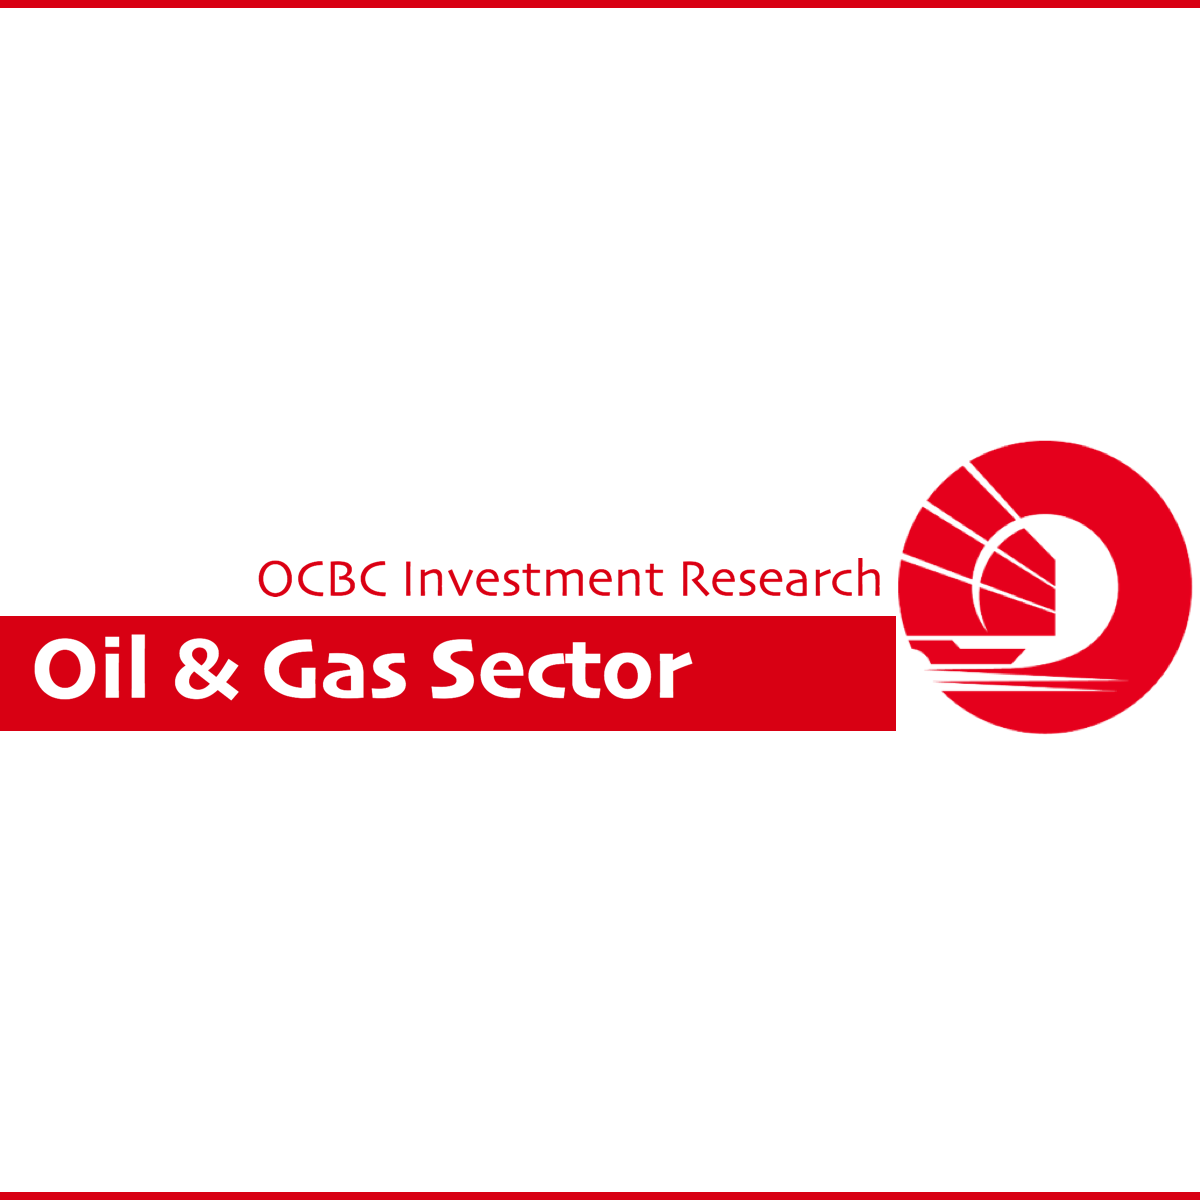 Oil & Gas Sector - OCBC Investment 2017-06-02: Two Years On, Whither Production Levels?